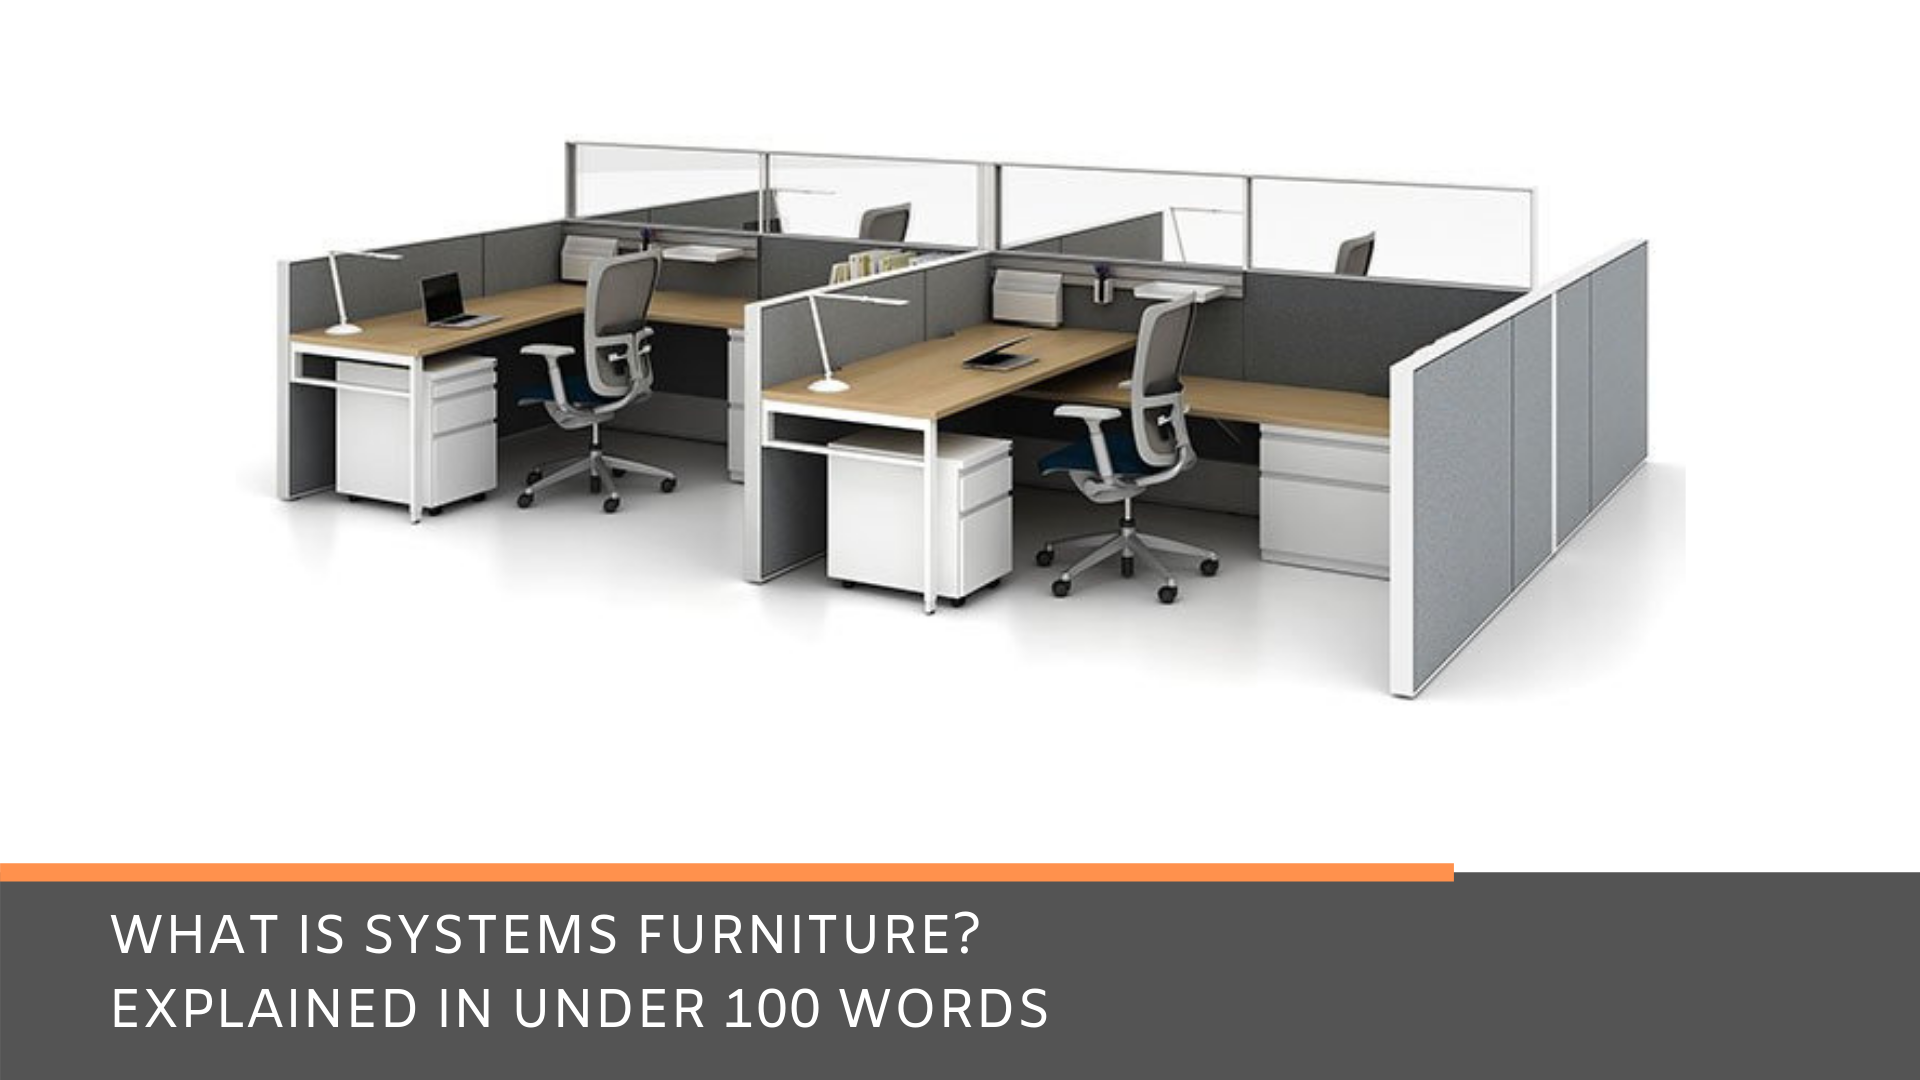 What is systems furniture definition